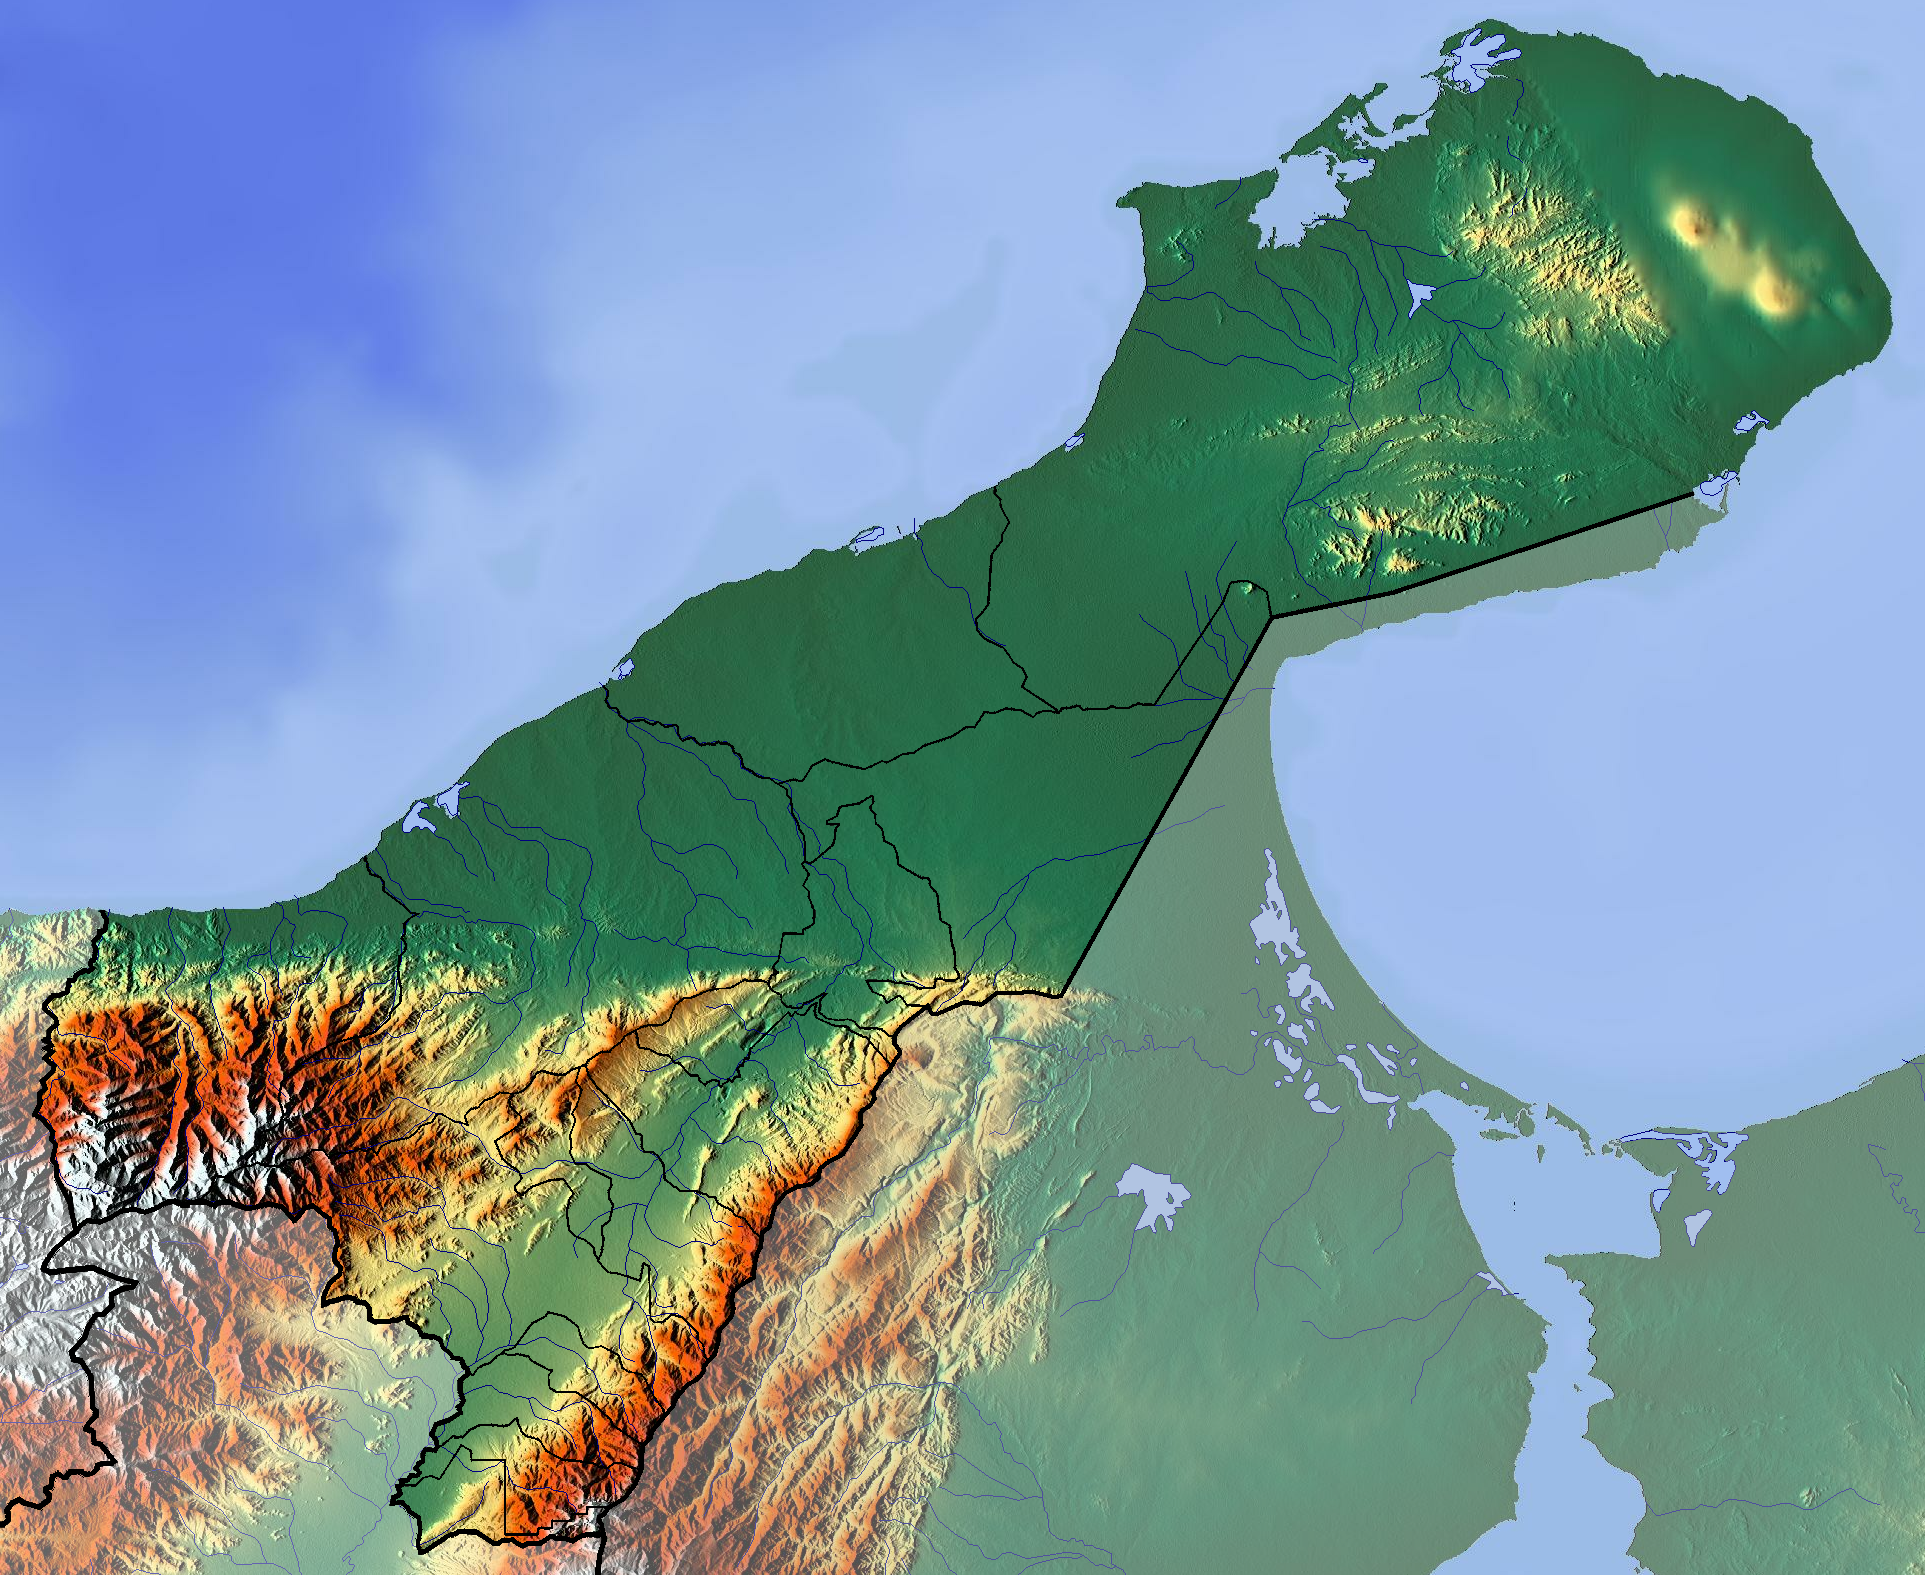 Topographic map of La Guajira (source: Wikimedia)